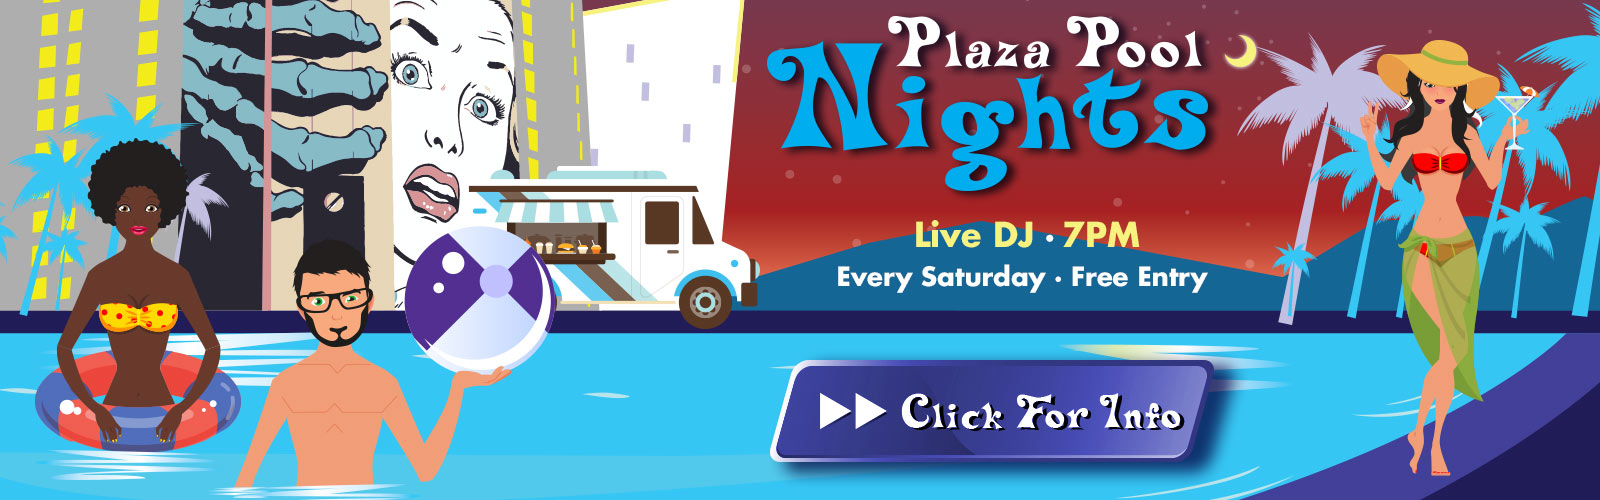 Plaza Pool Nights - Every Saturday